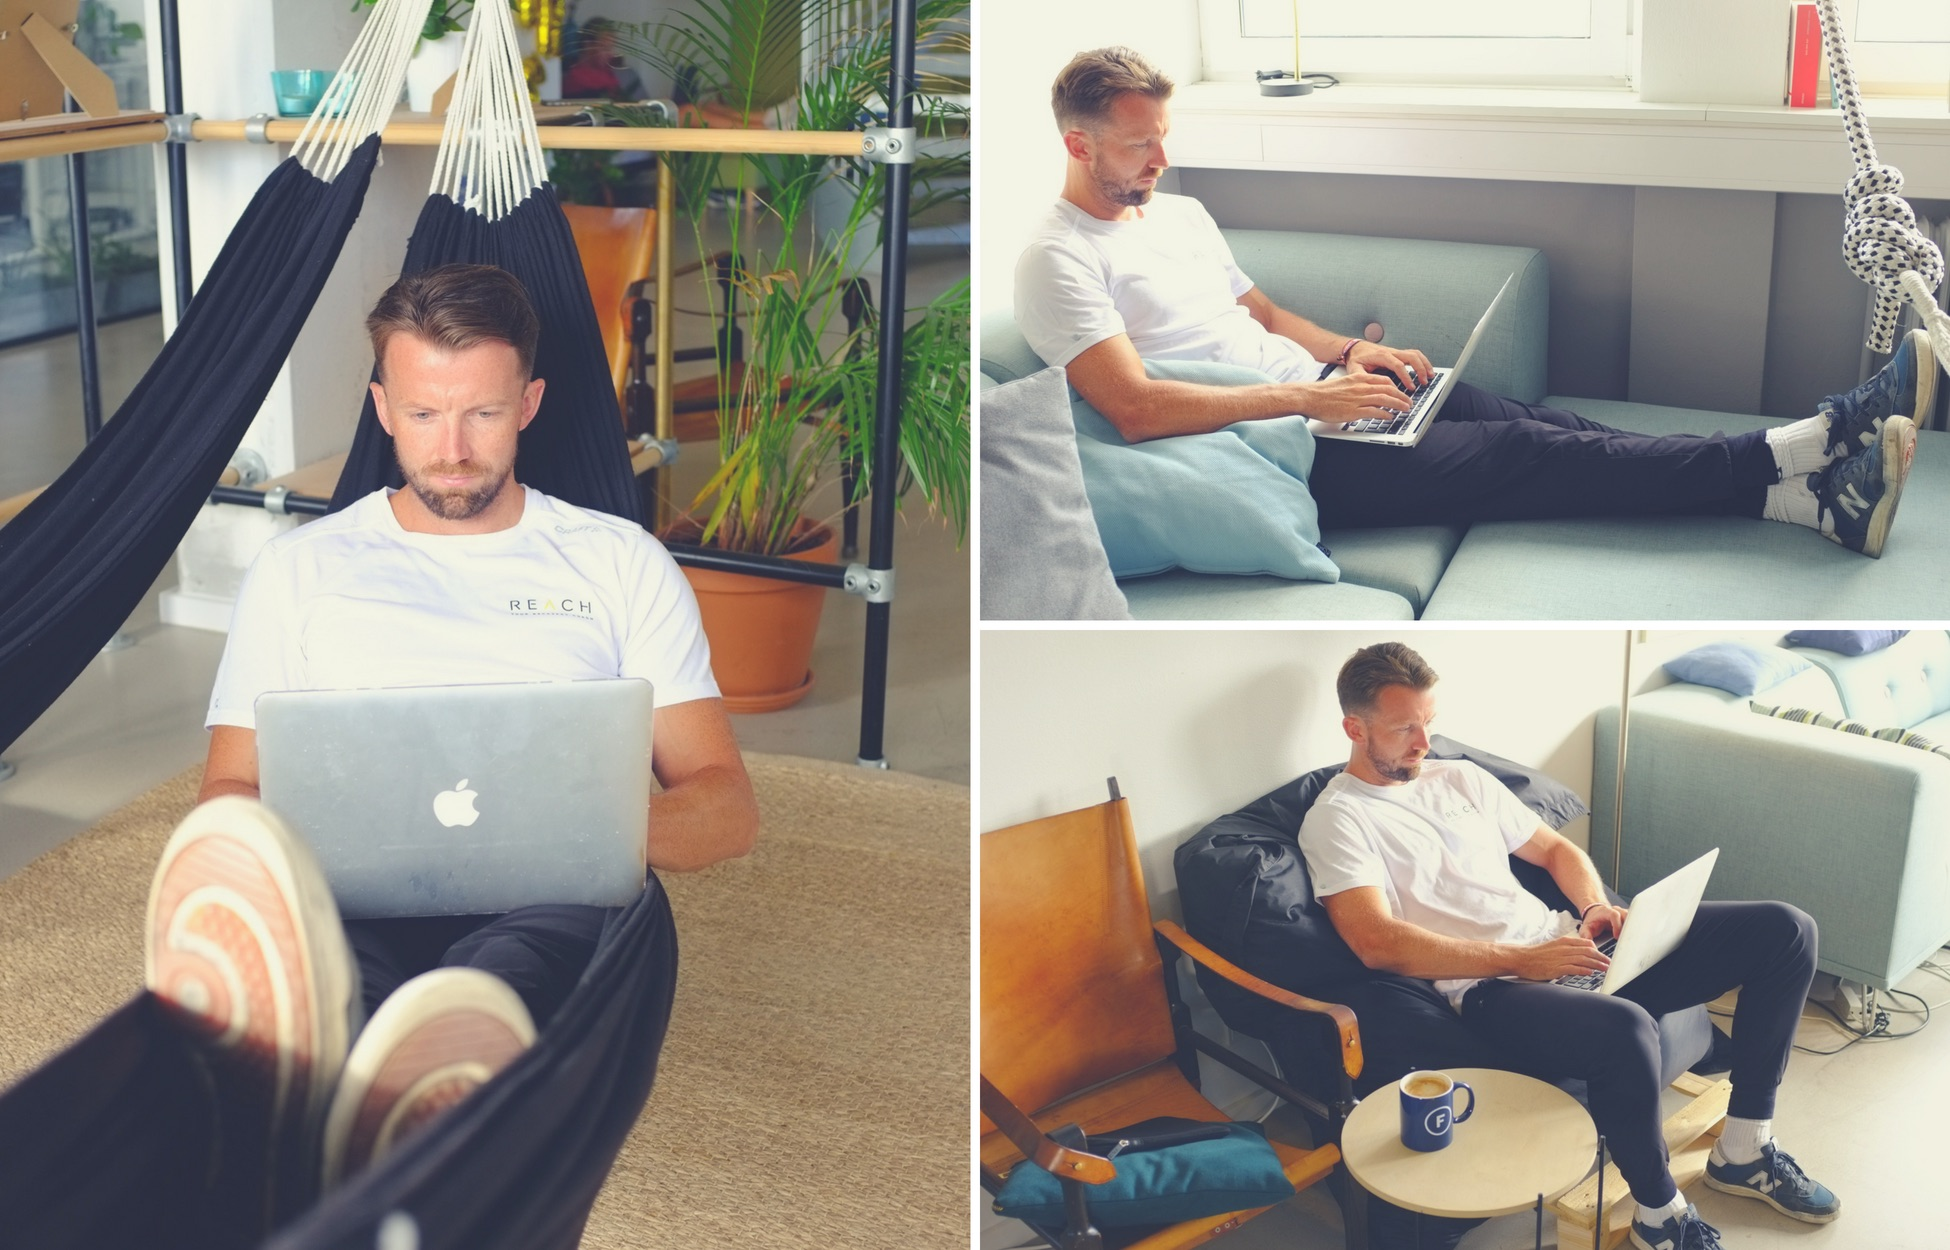 montage of alternative posture positions at work